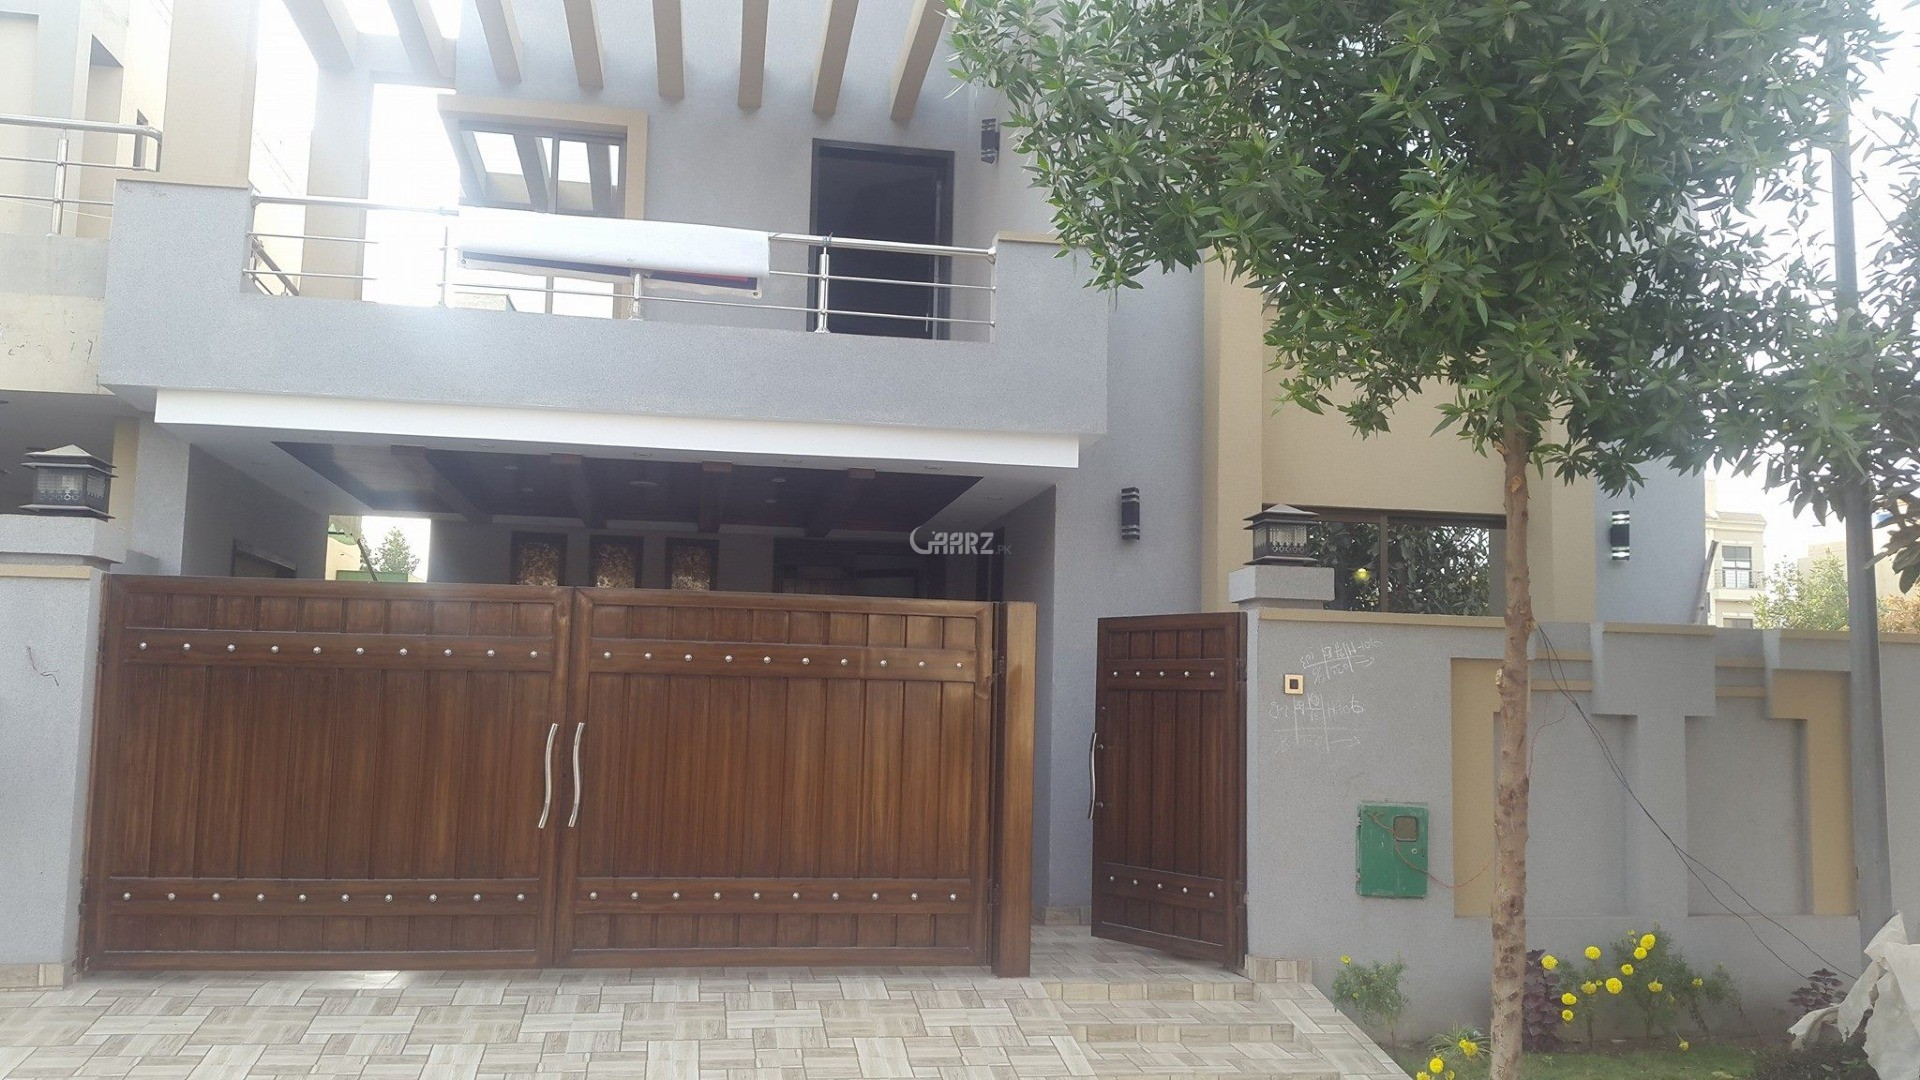 3 marla house for rent in arbab sabz ali khan town peshawar for rs  23 00 thousand